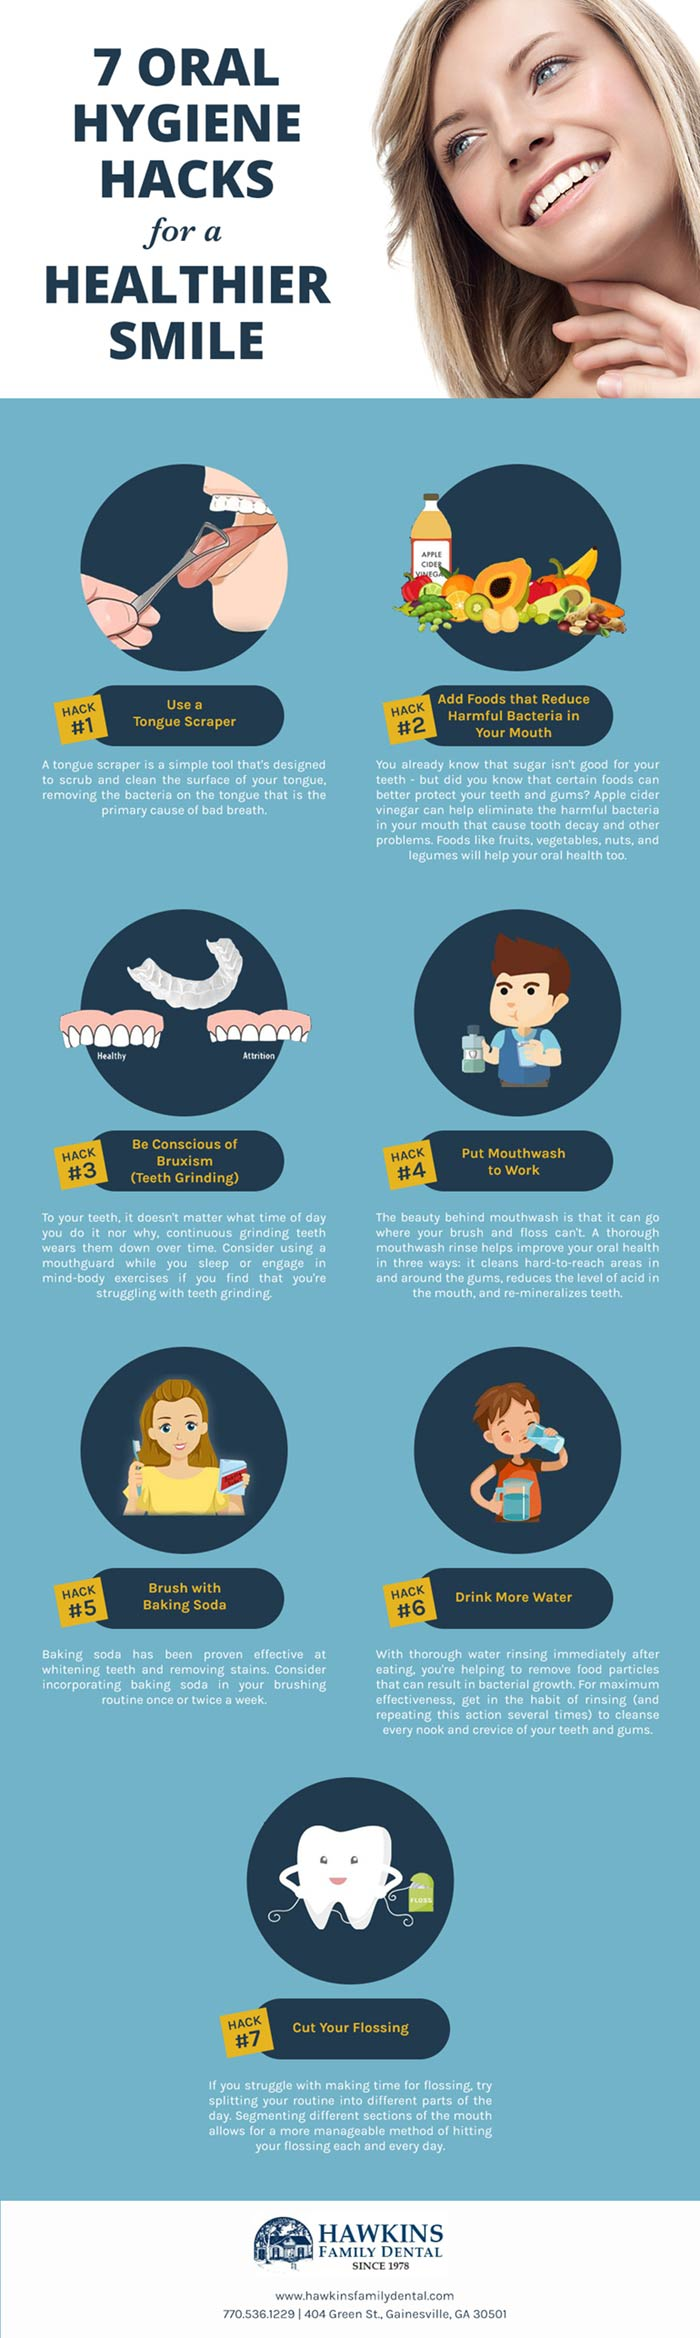 Importance-Oral-Hygiene-Infographic